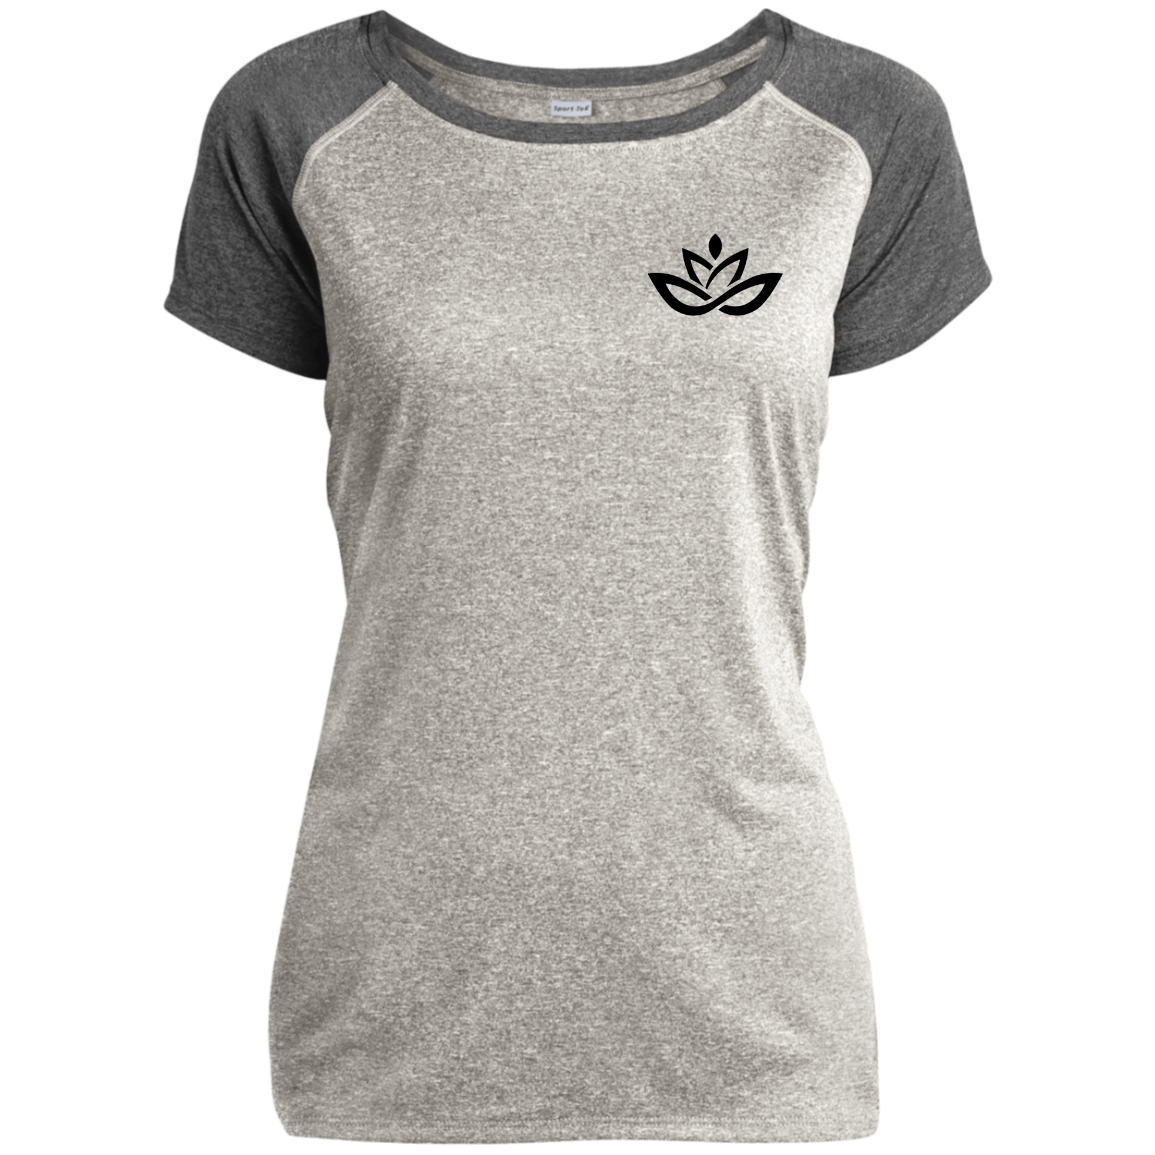 LST362 Ladies Heather on Heather Performance T-Shirt